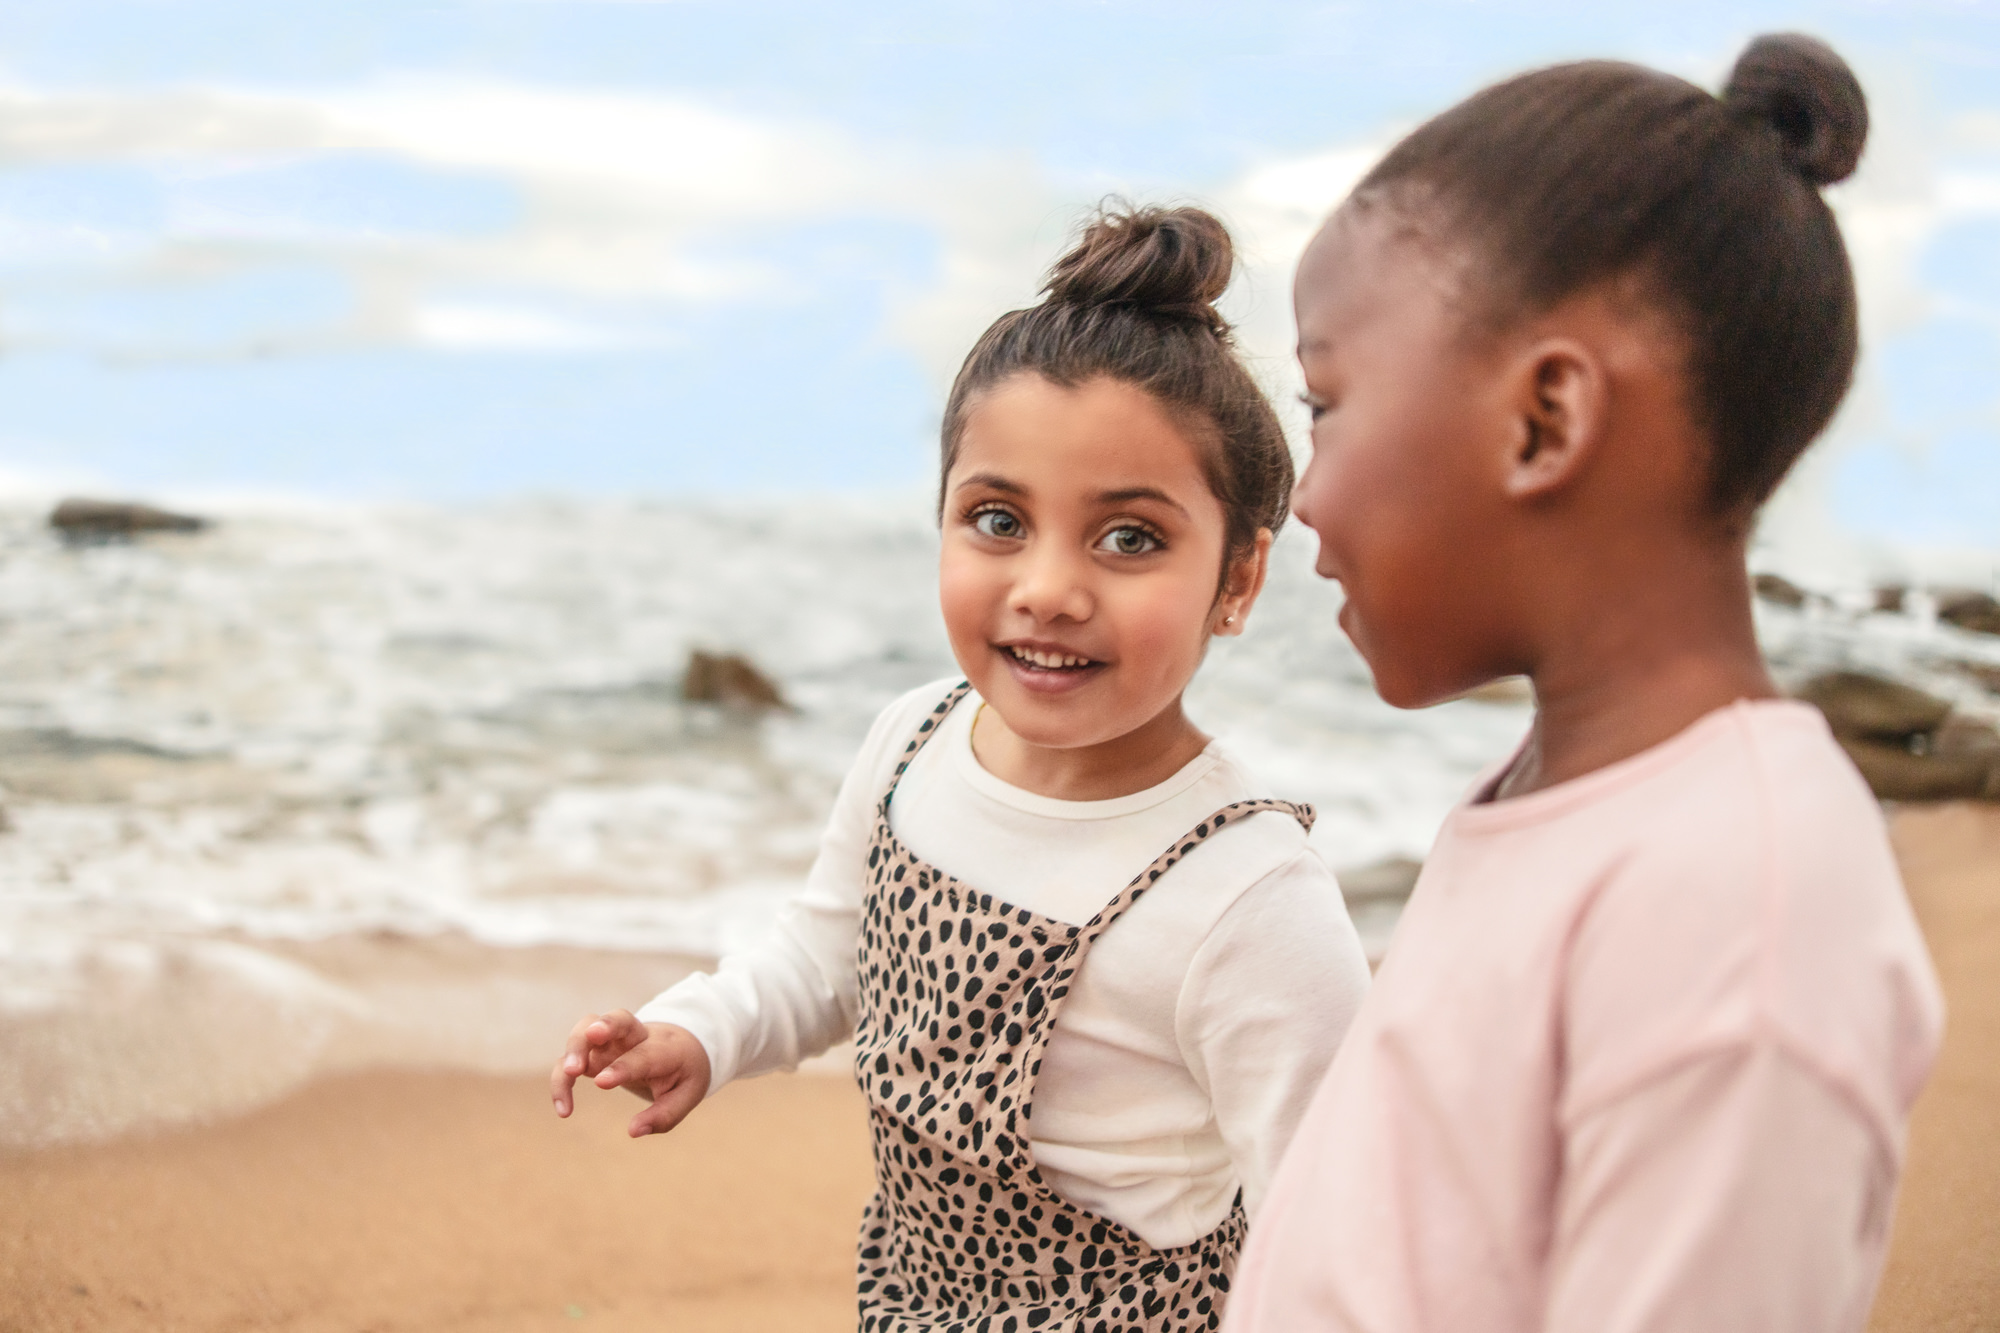 Image of girls on beach at the Beverly Hills Hotel in uMhlanga Rocks, Durban for  Tsogo Sun's Image Library & Content Library by Michelle Wastie Photography